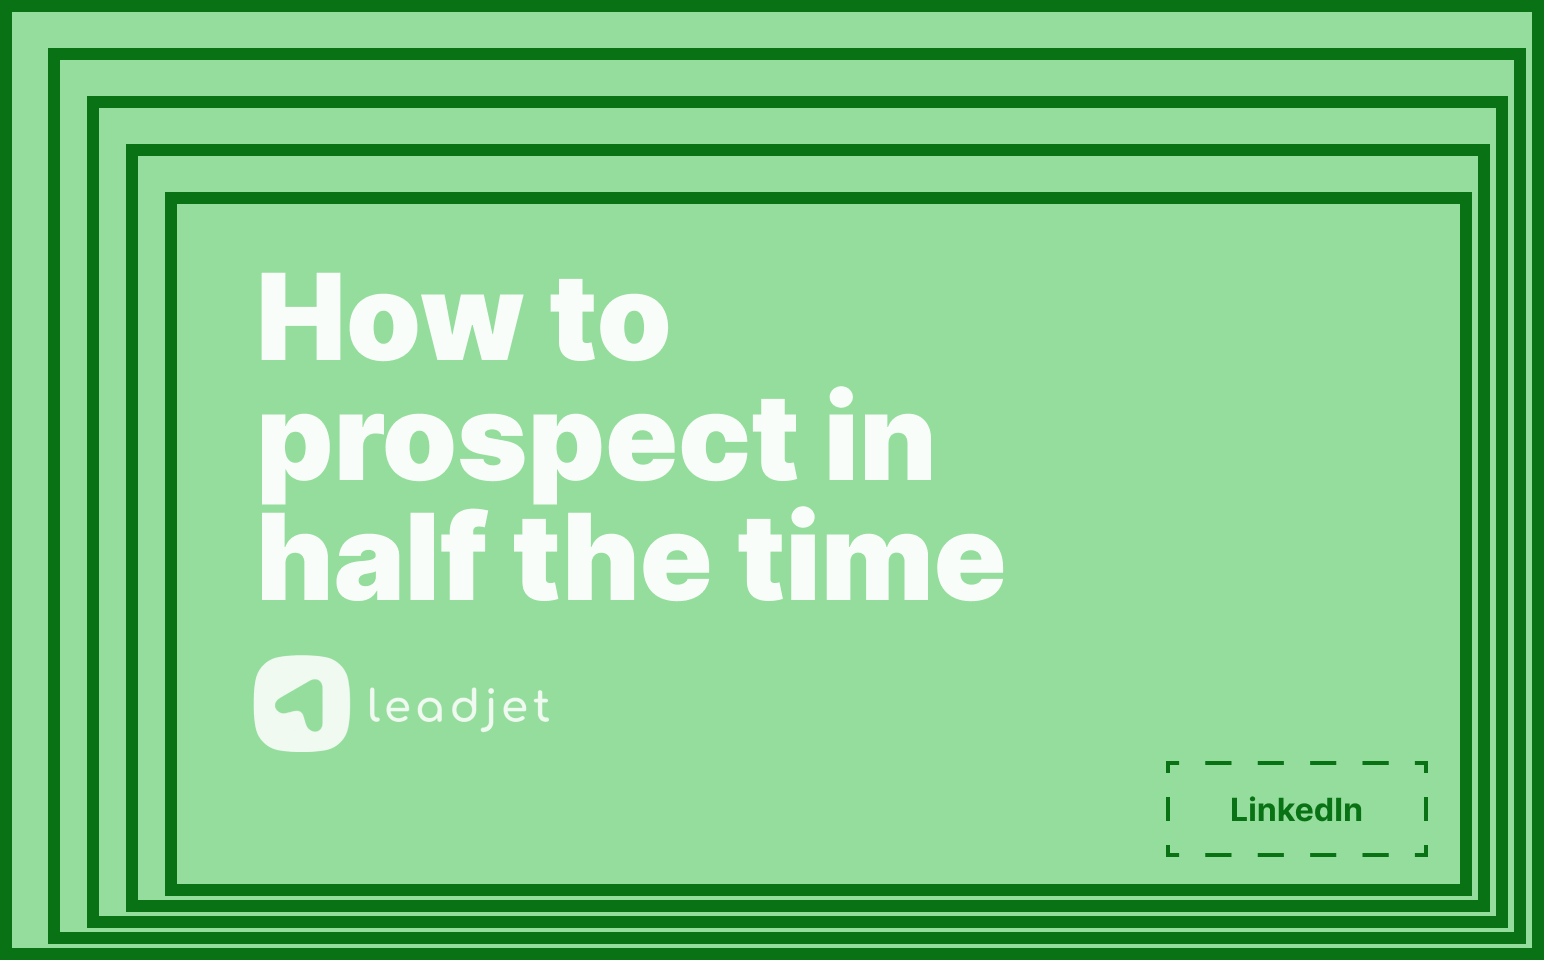 How Leadjet helps you prospect in half the time